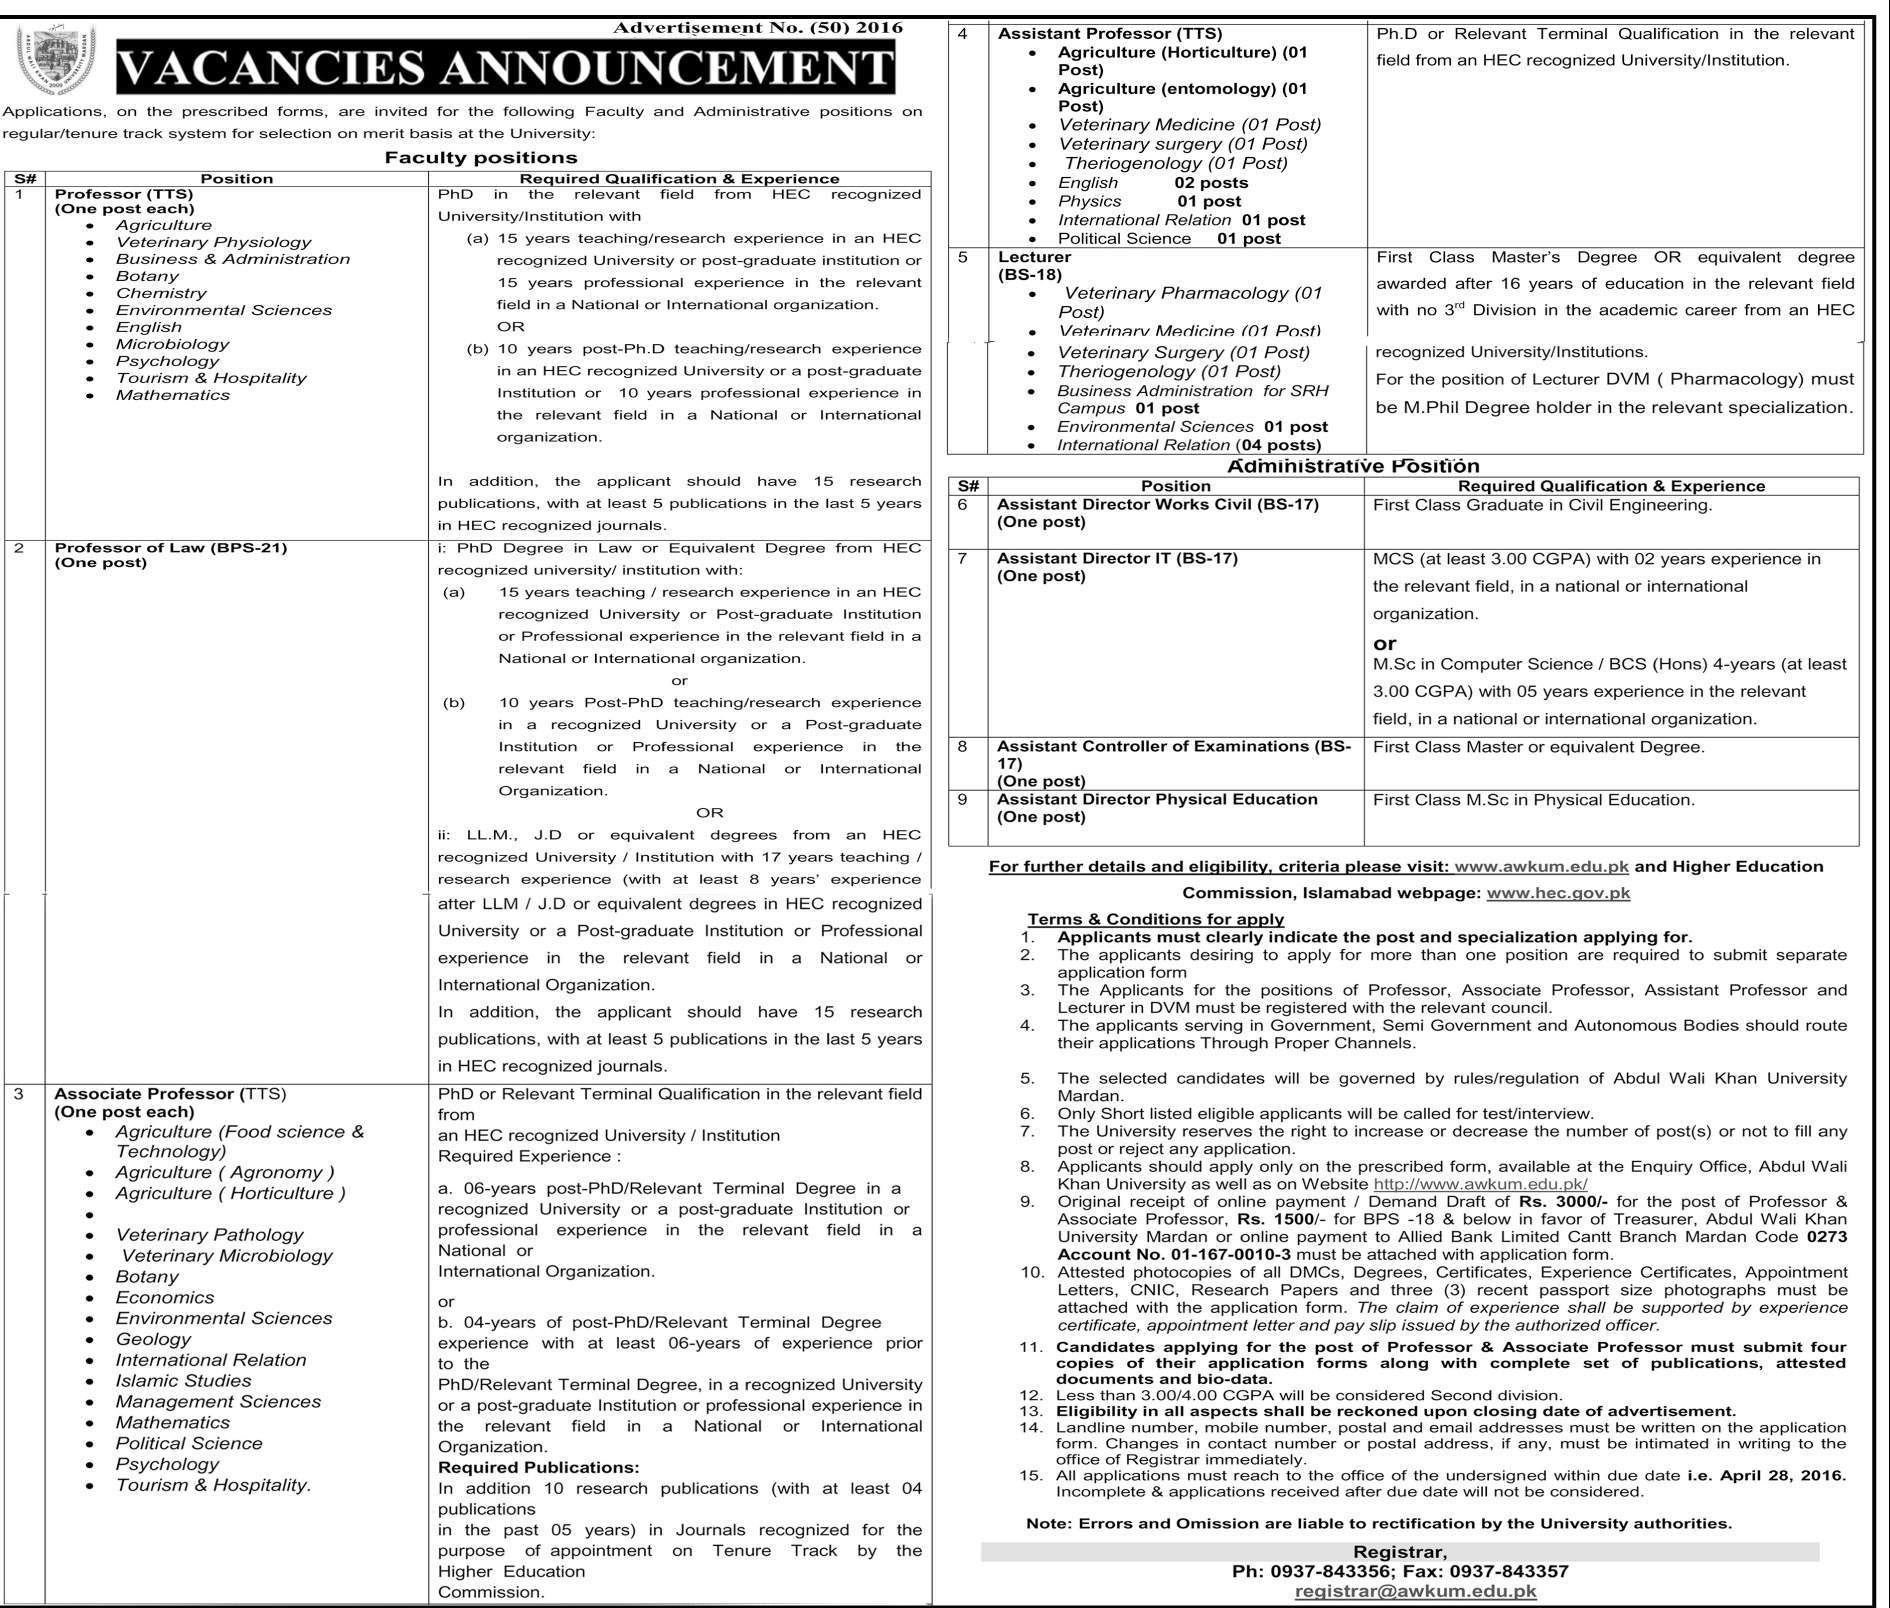 Abdul Wali Khan University Jobs 2016